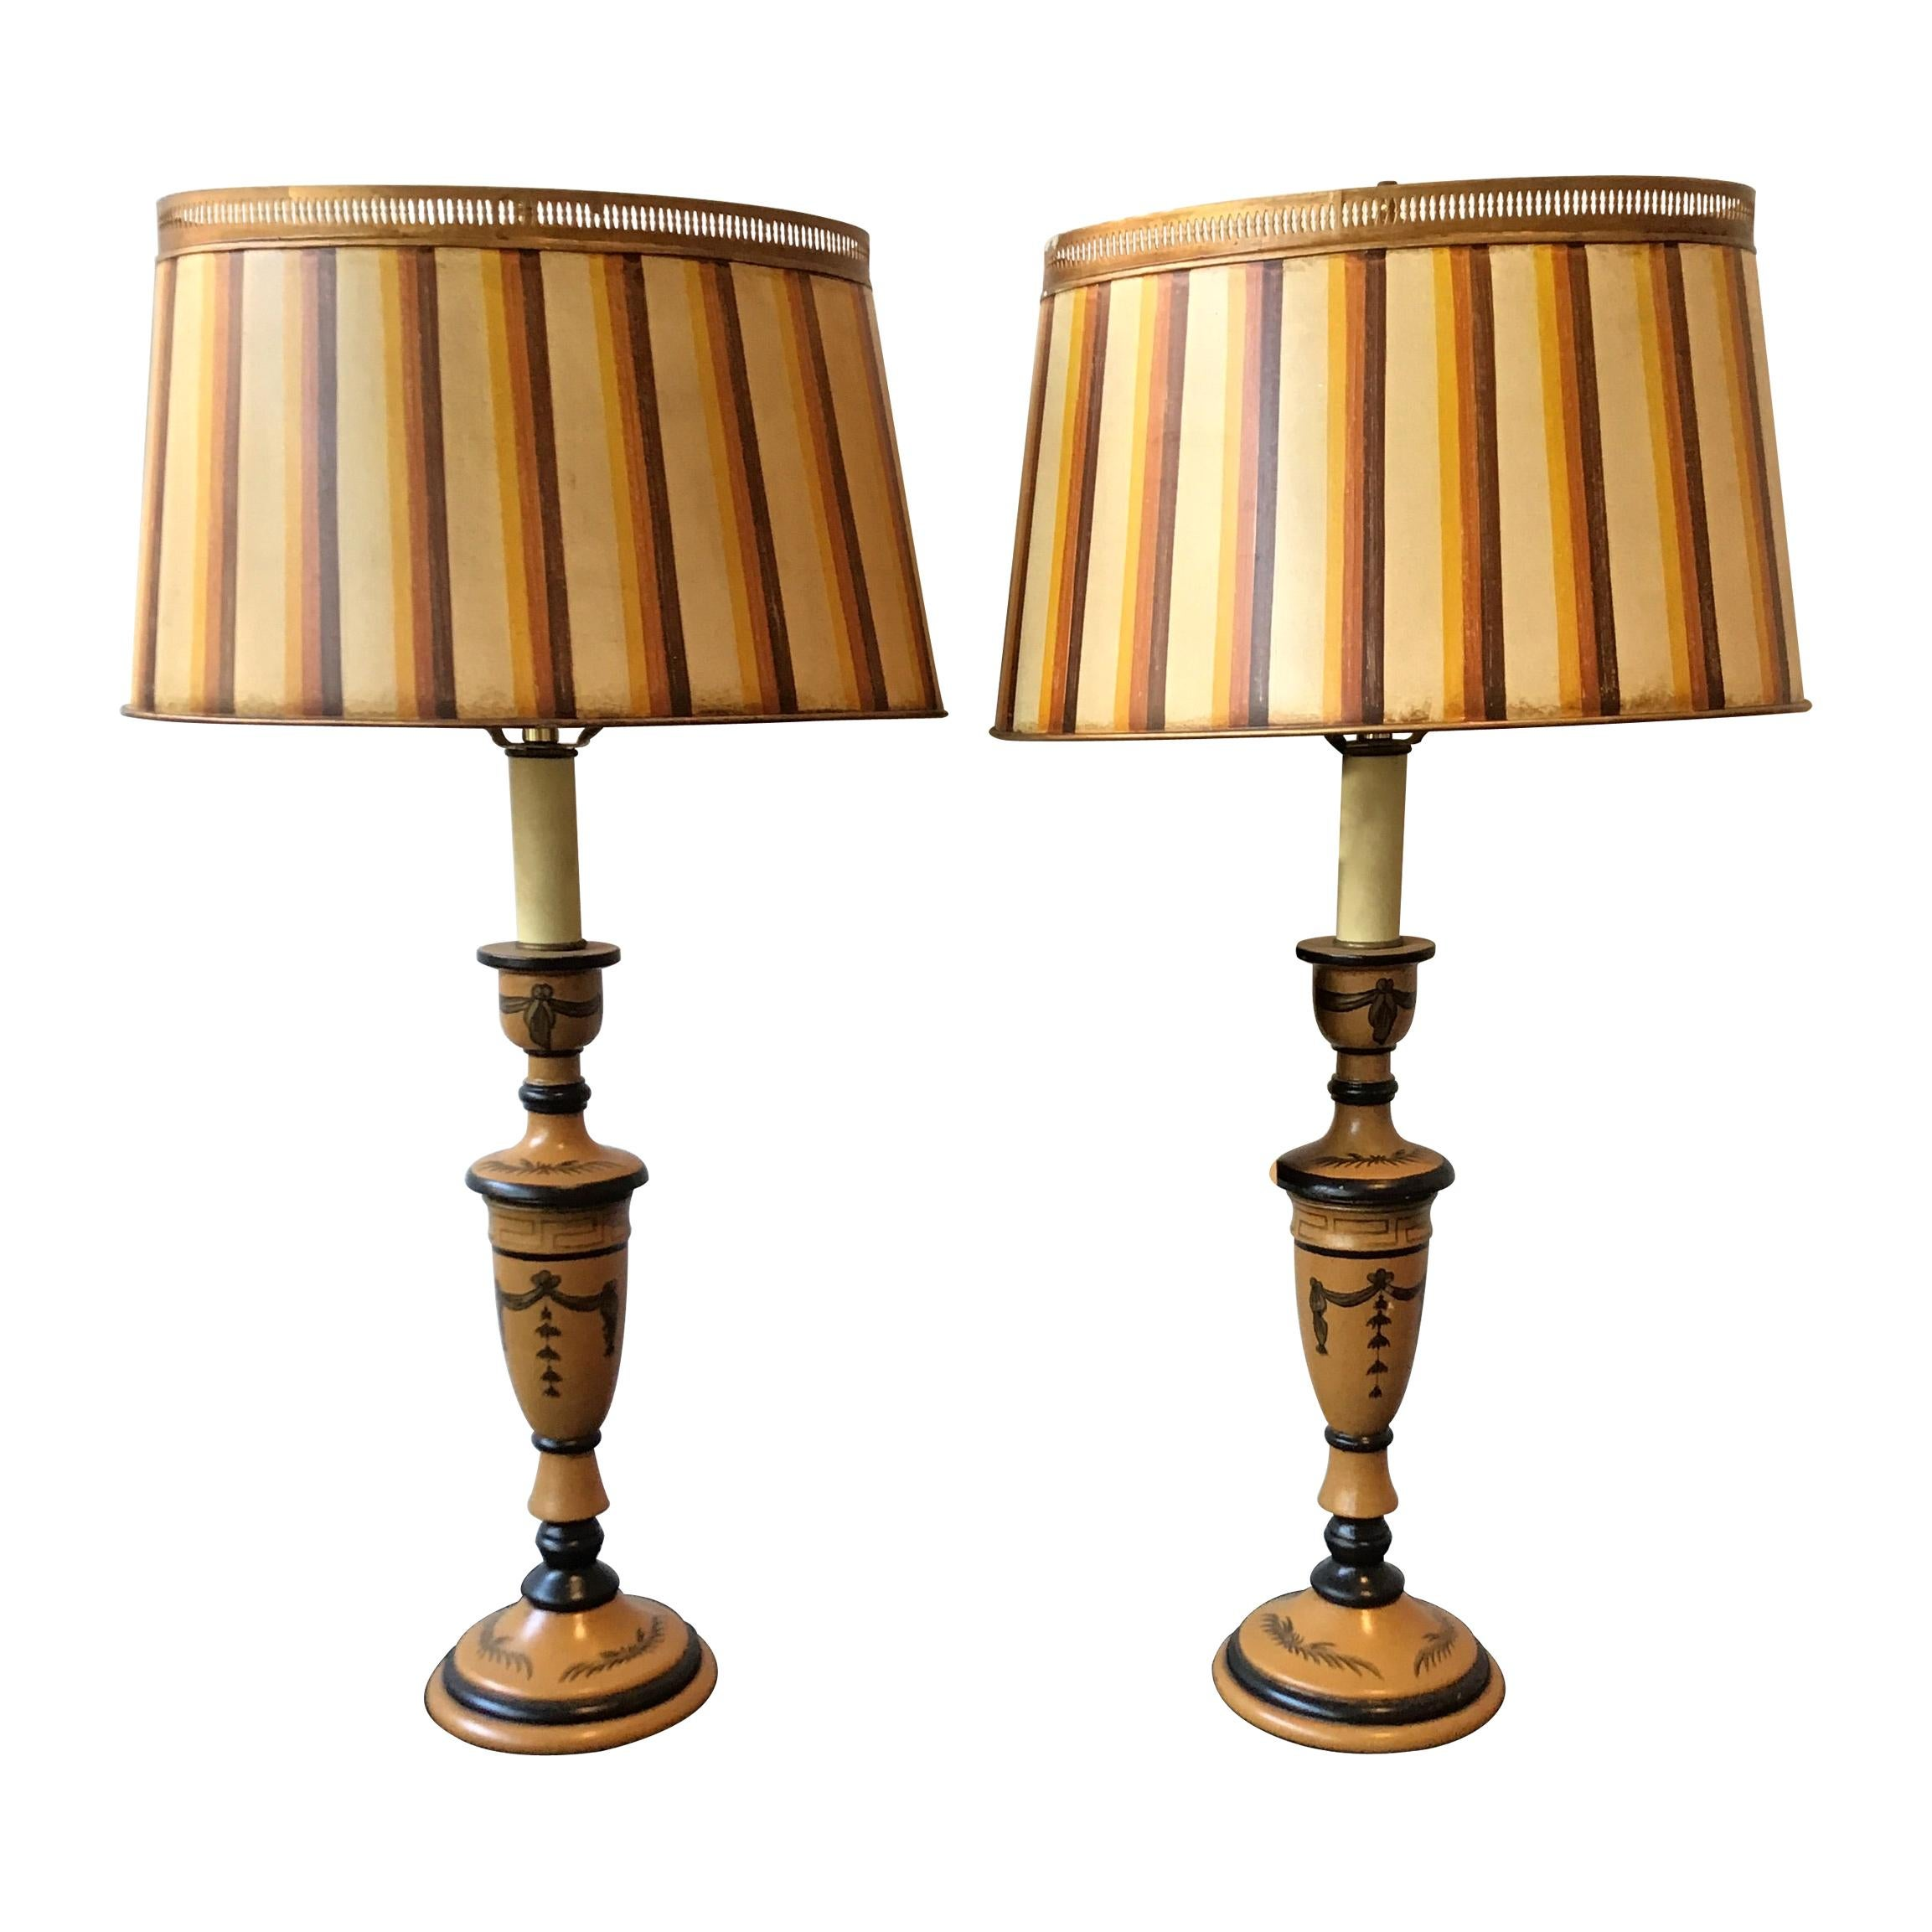 Pair of Classical Tole Lamps